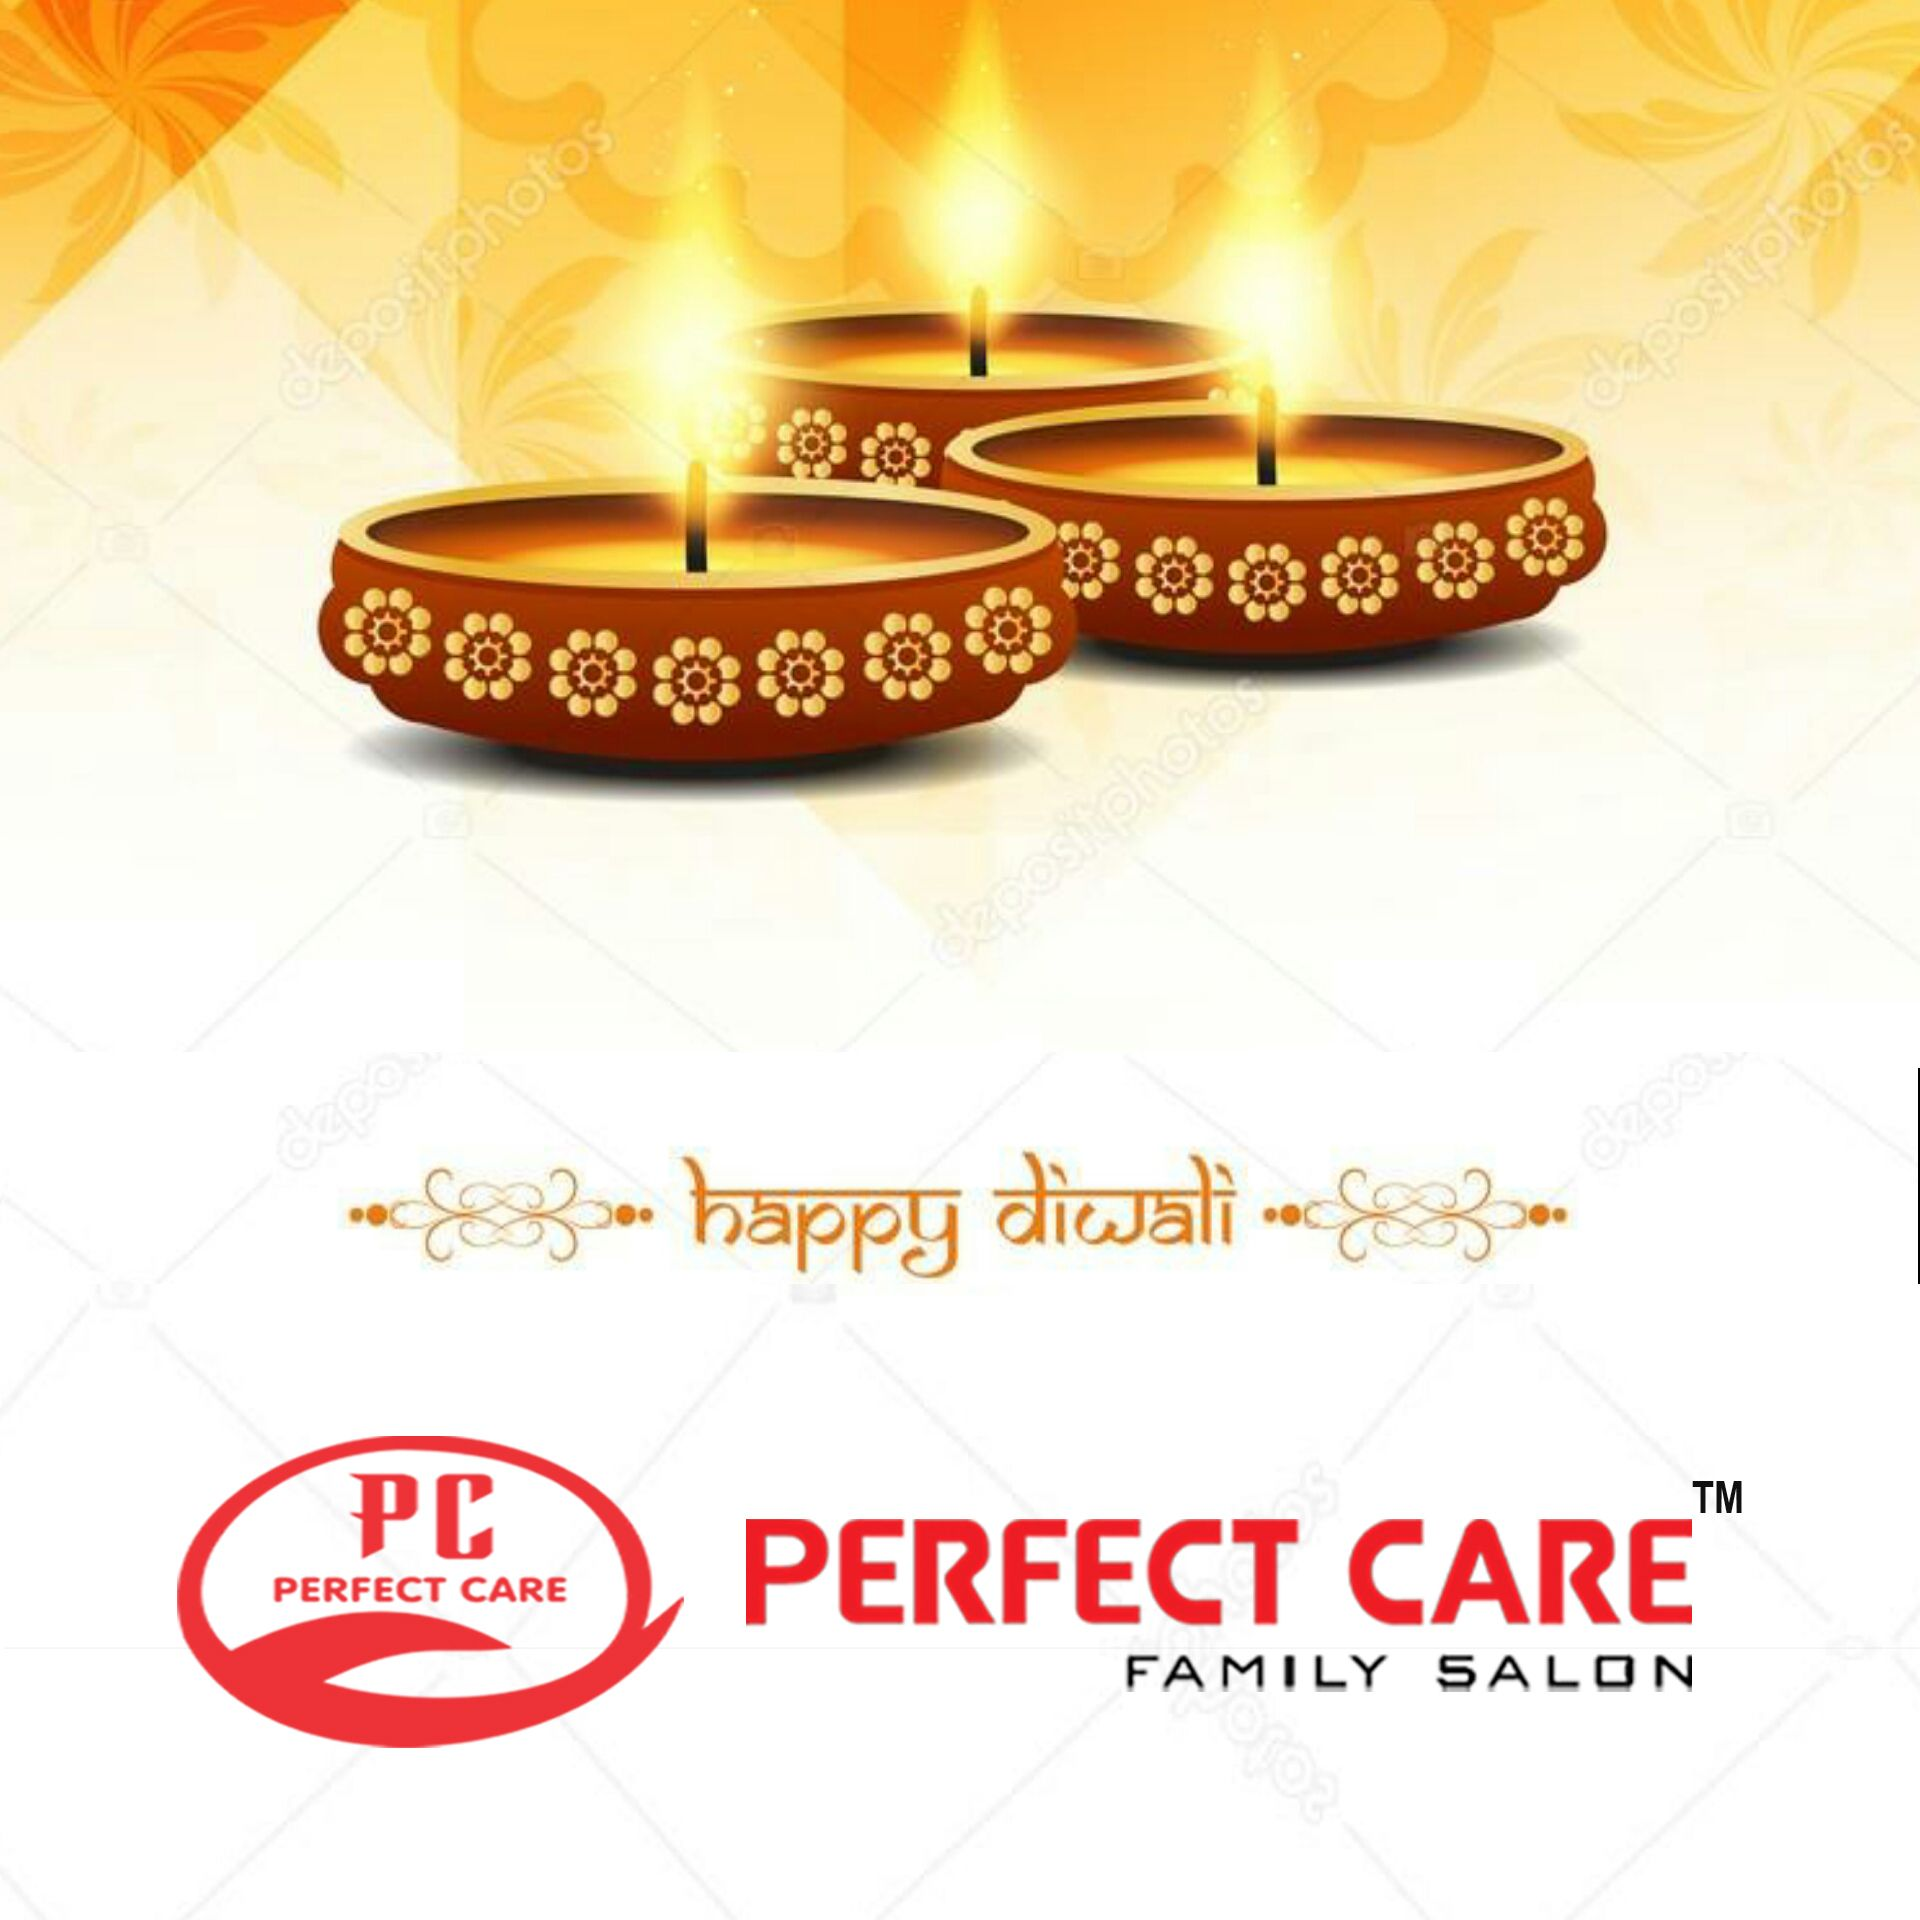 Pin by PERFECT CARE FAMILY SALON on PERFECT CARE FAMILY